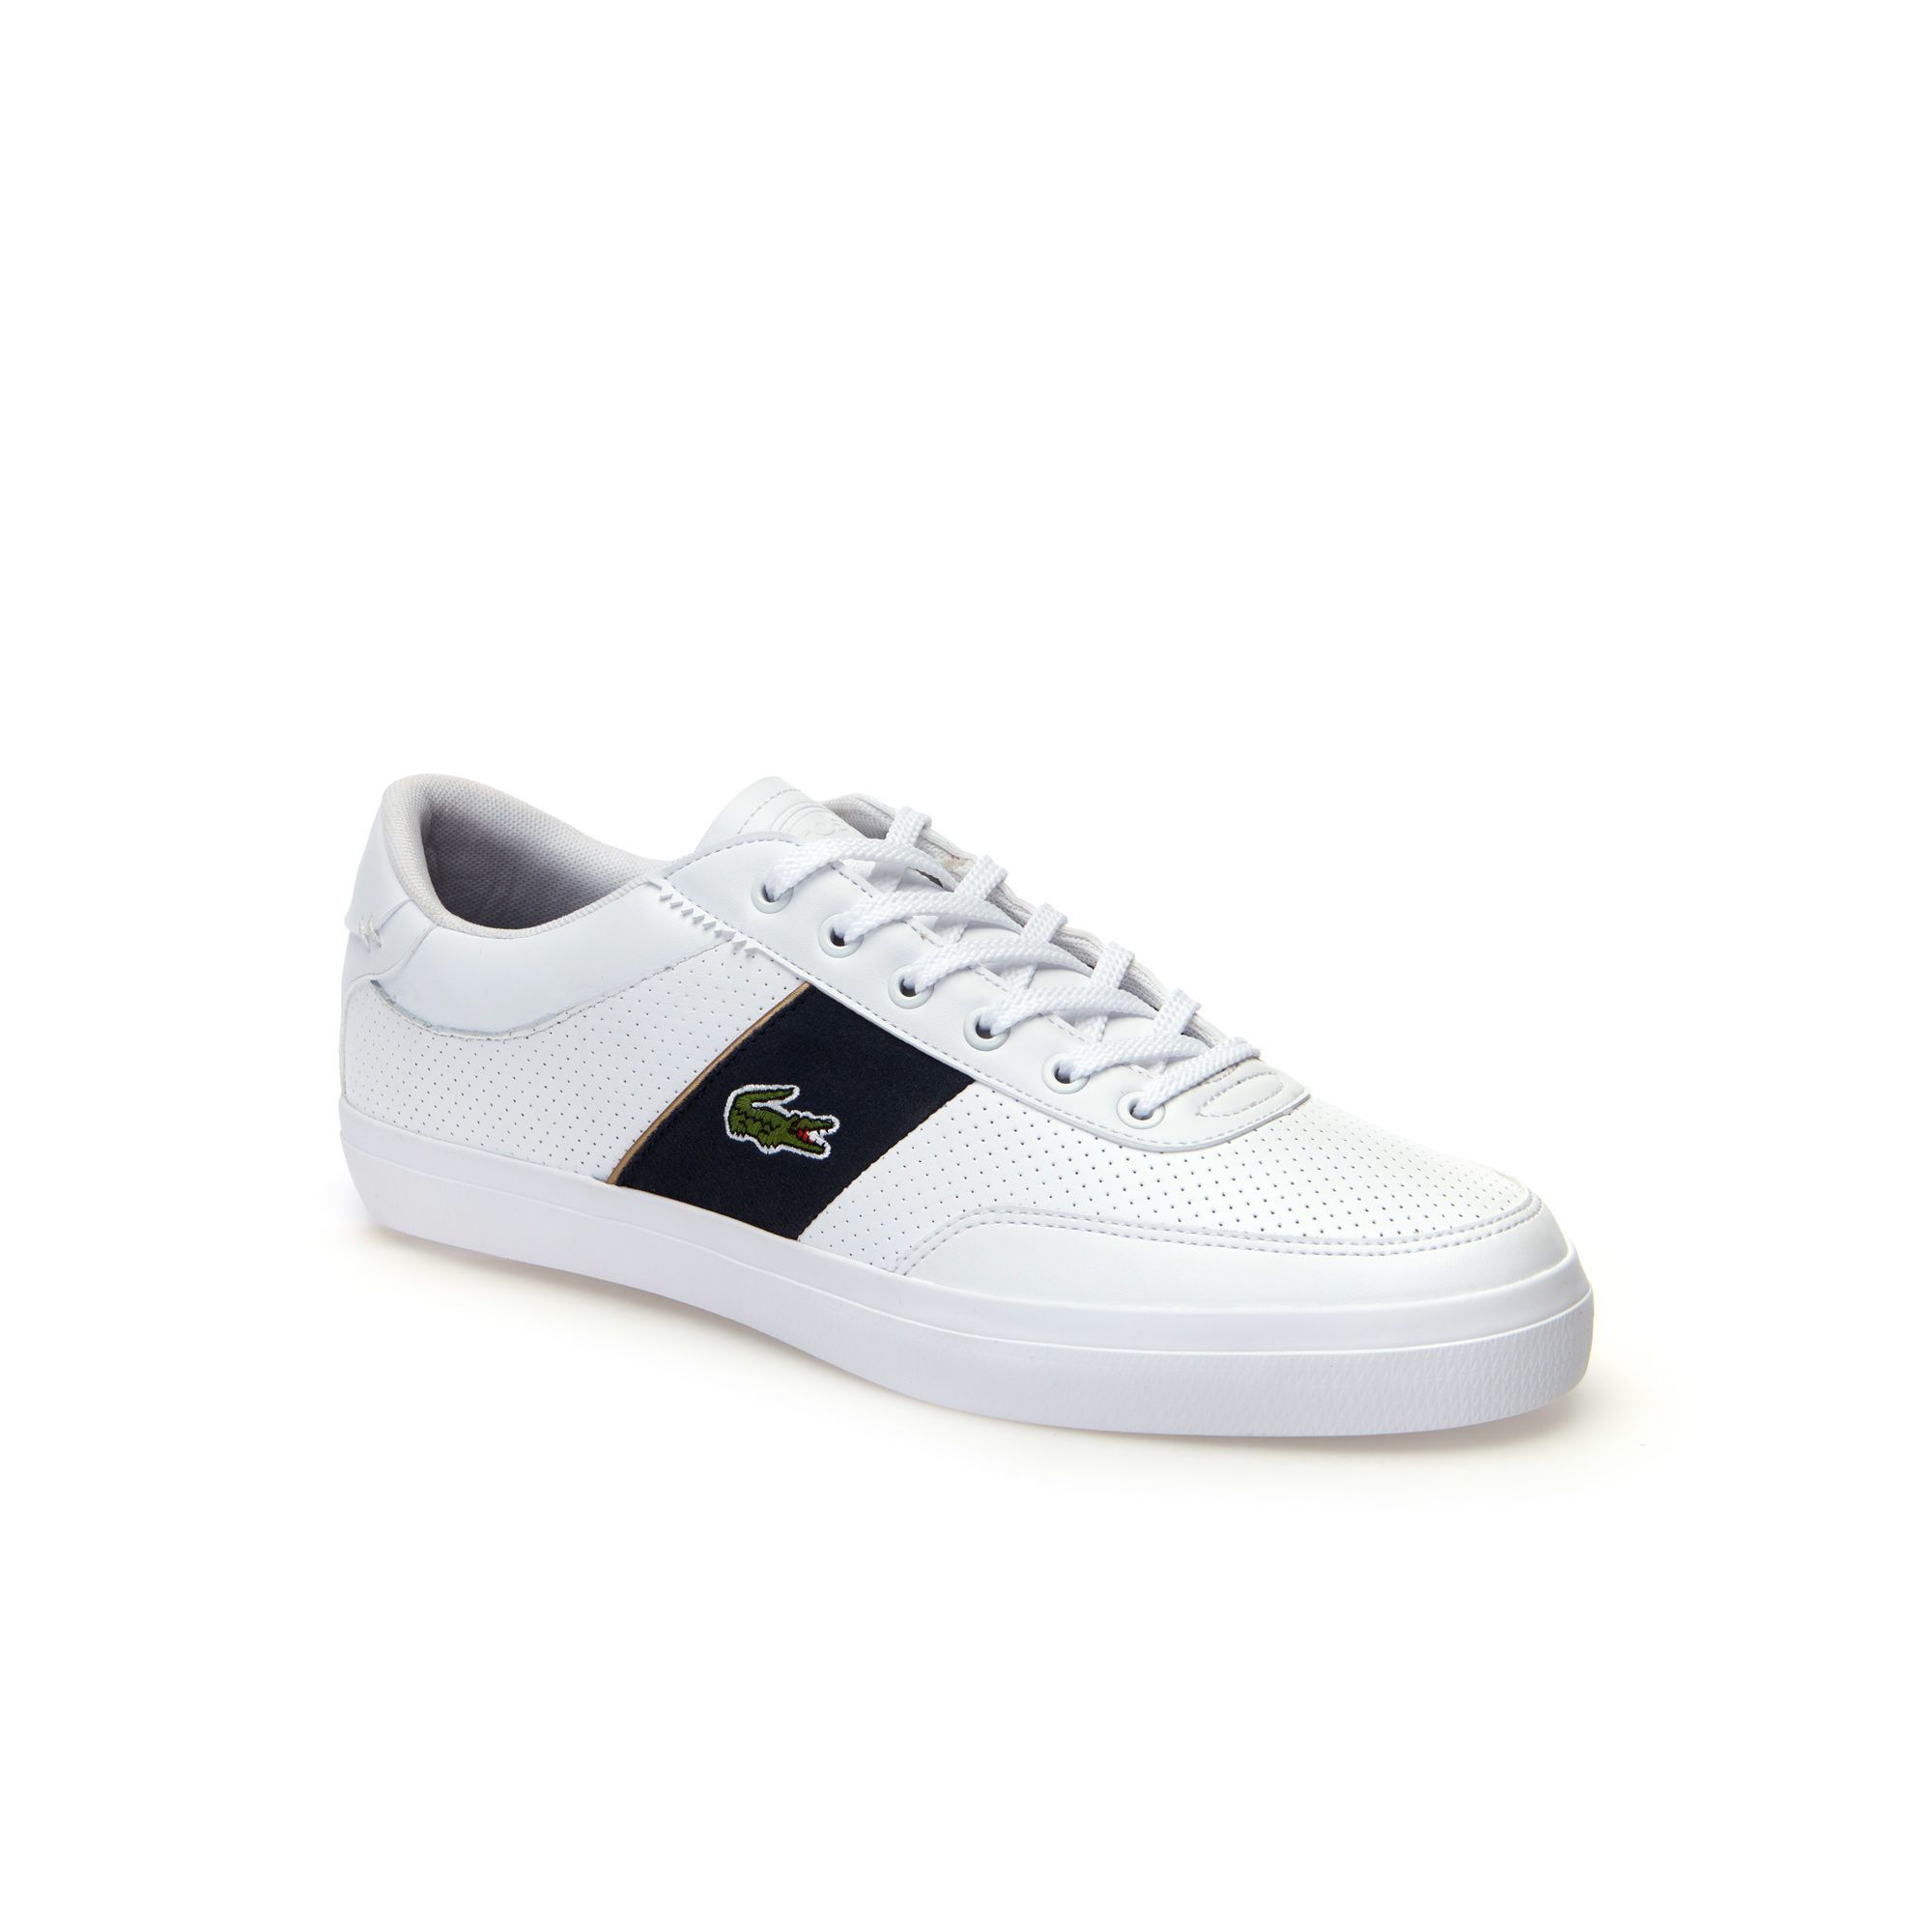 a6beac791d3966 LACOSTE MEN S COURT-MASTER NAPPA LEATHER TRAINERS.  lacoste  shoes ...